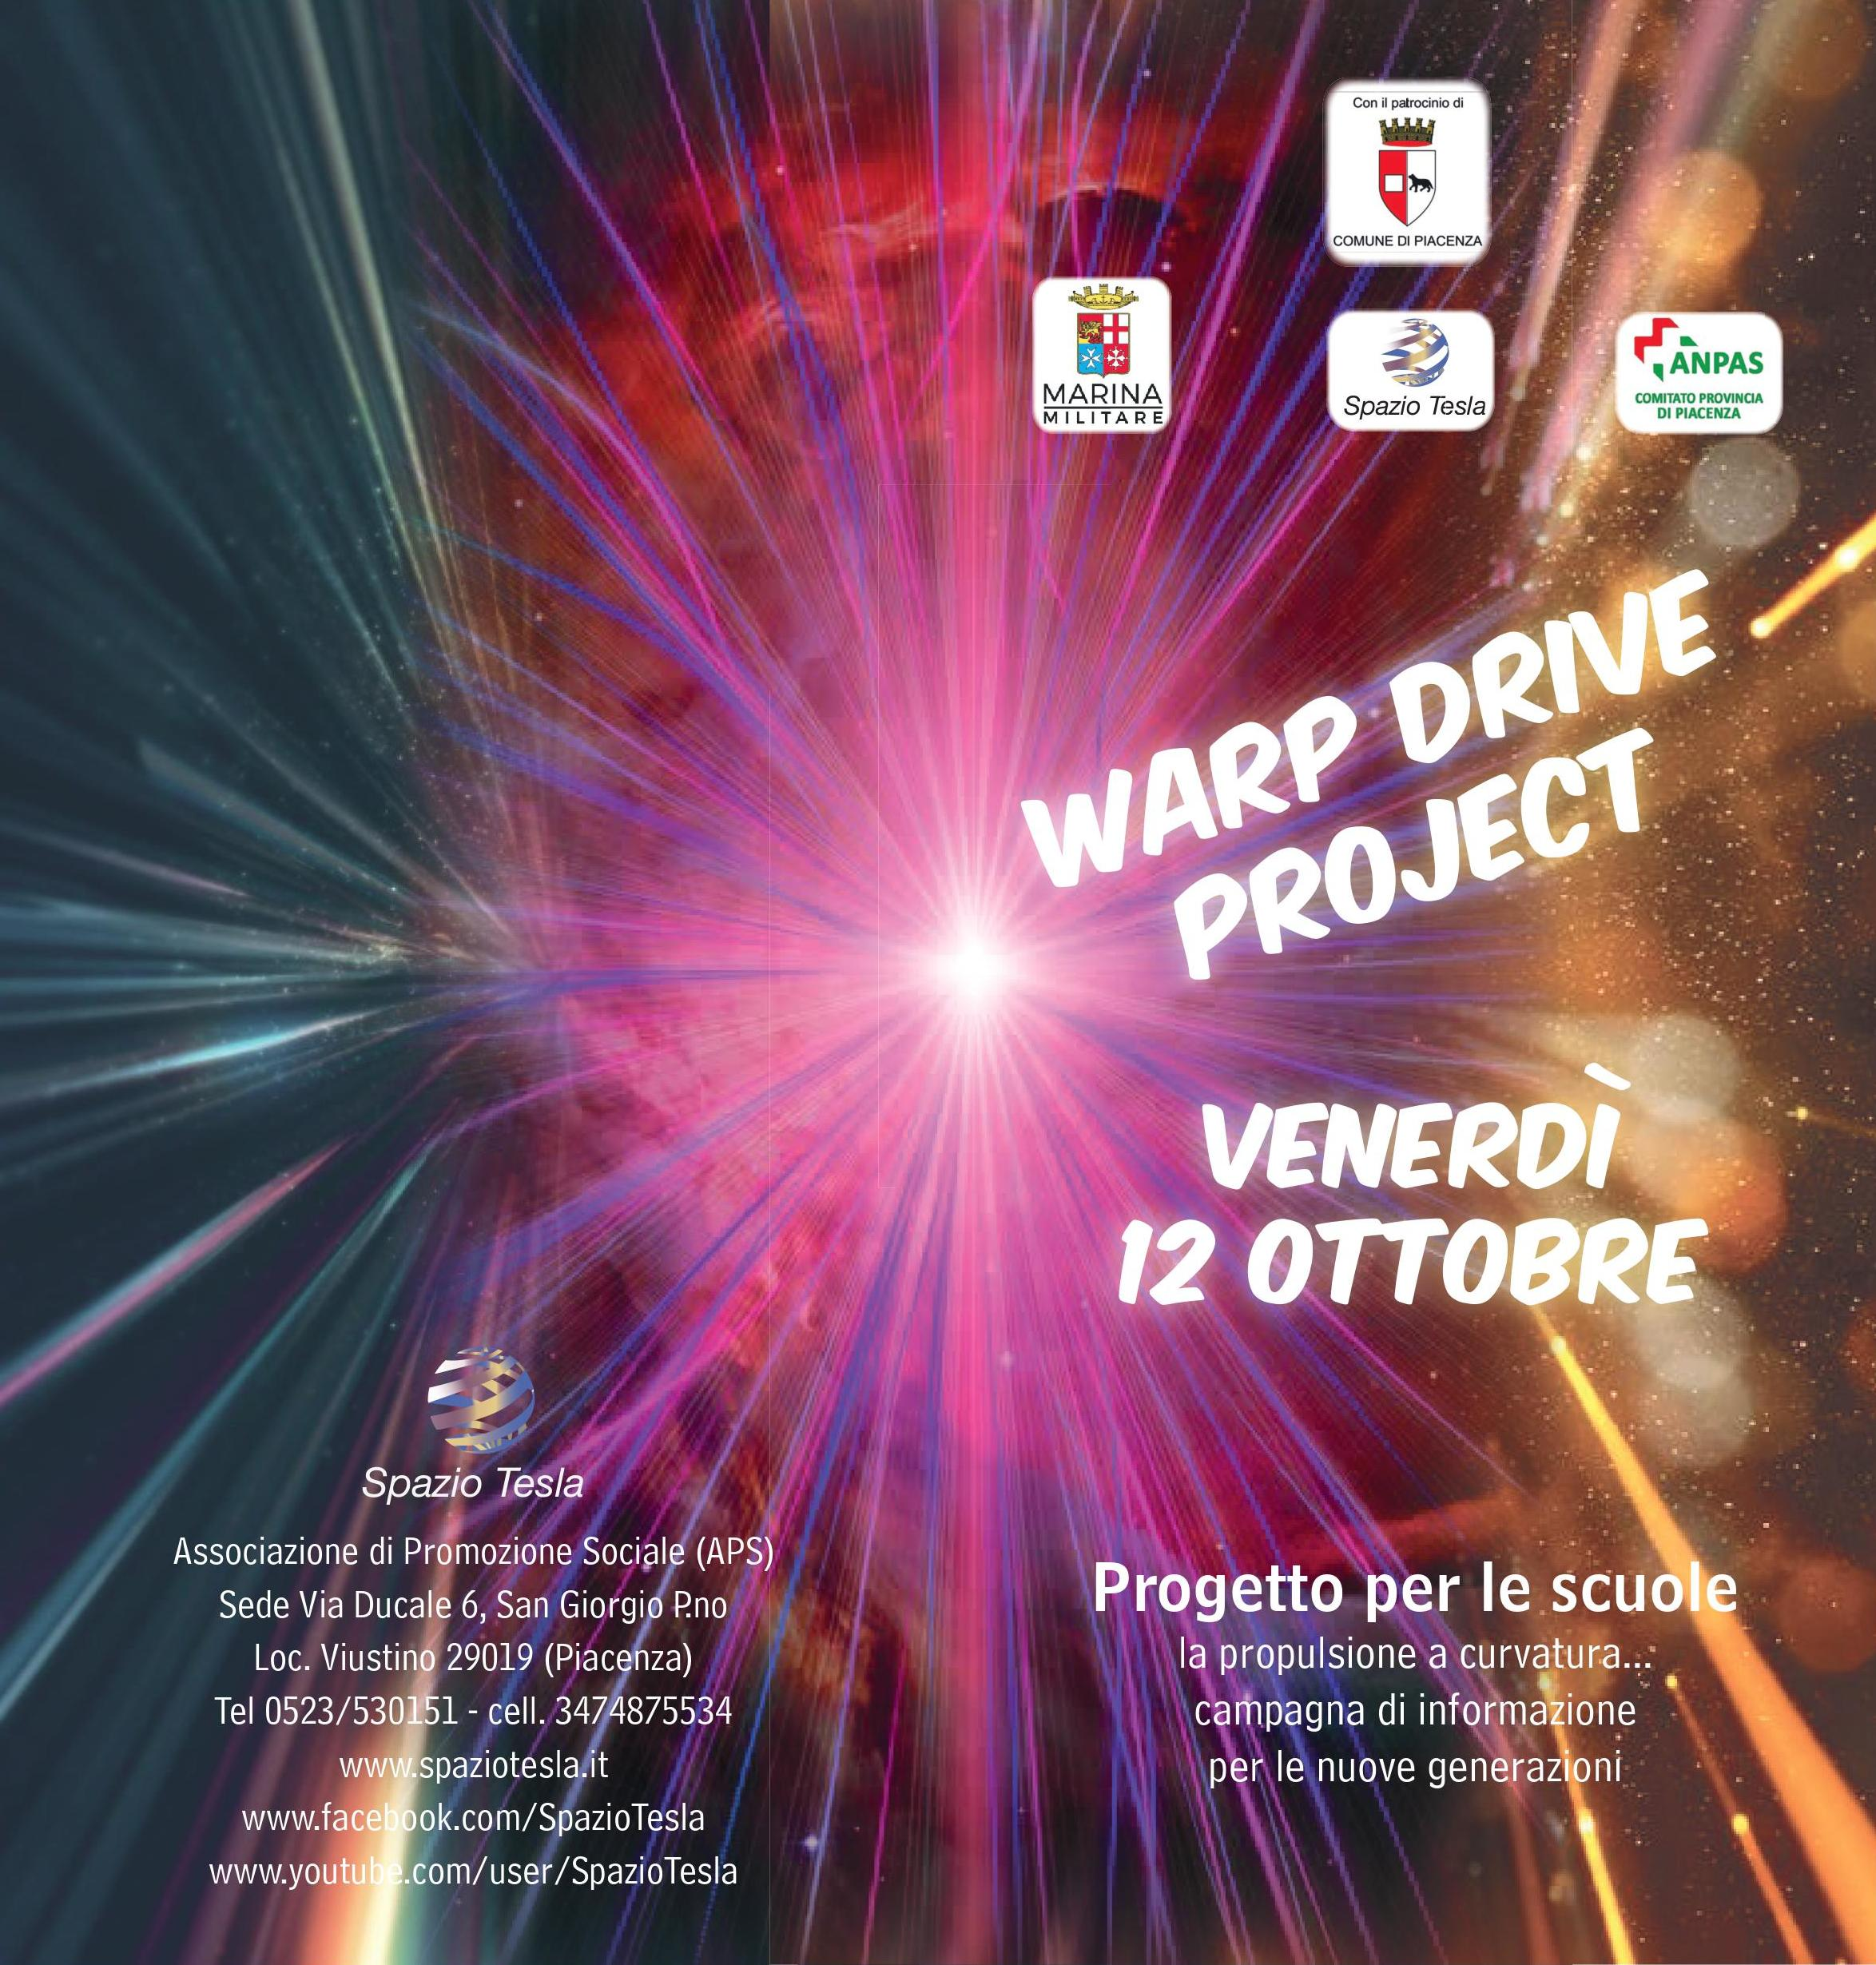 Locandina Warp Drive Project MM 2018